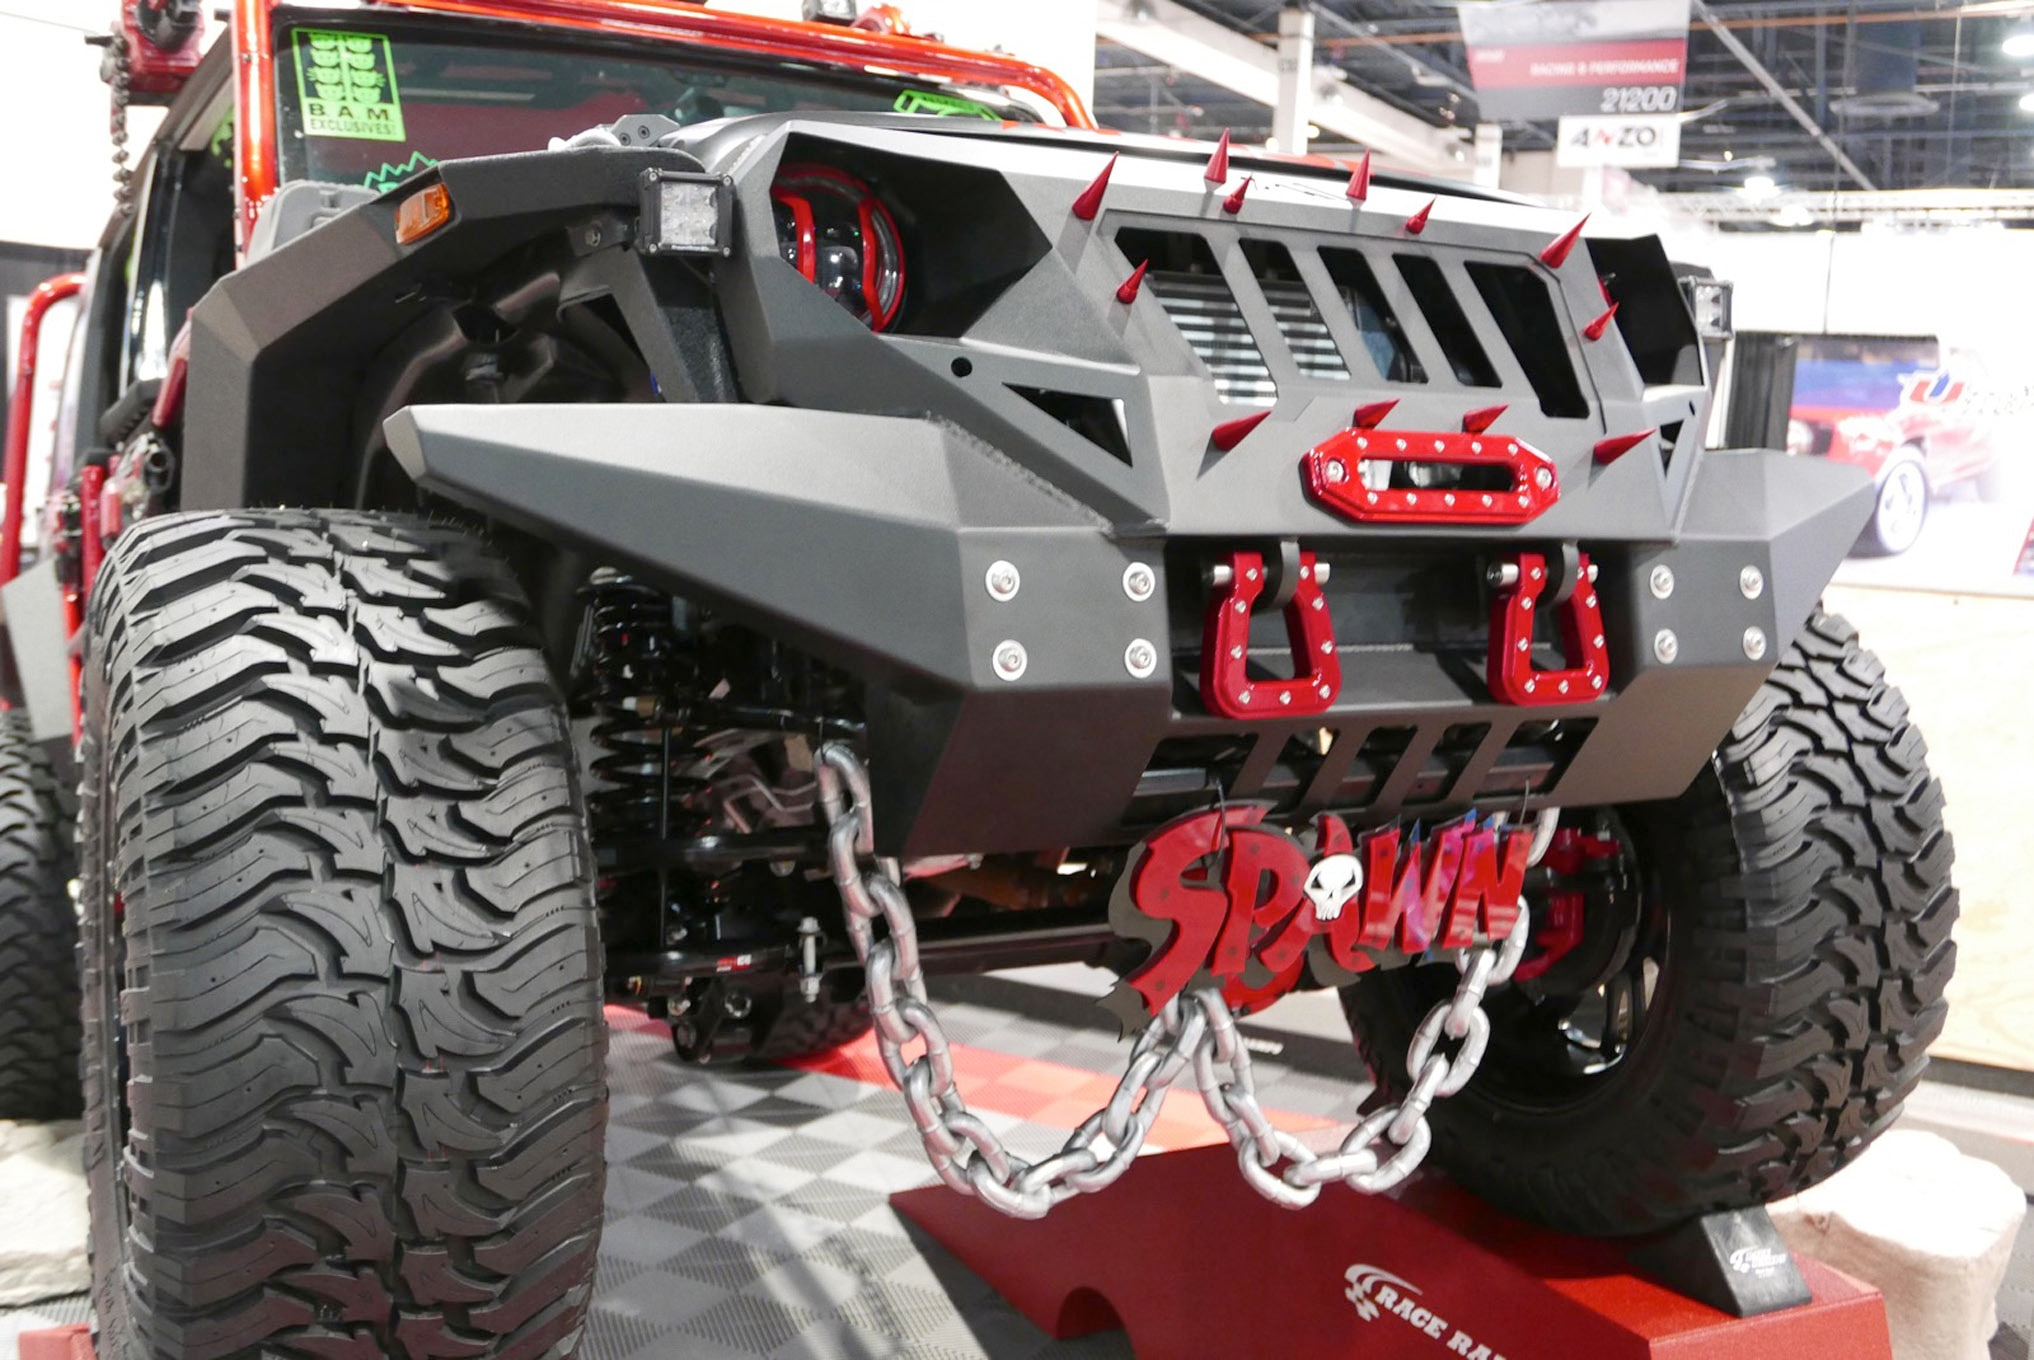 086 sema 2017 day 1 south upper hall gallery photos